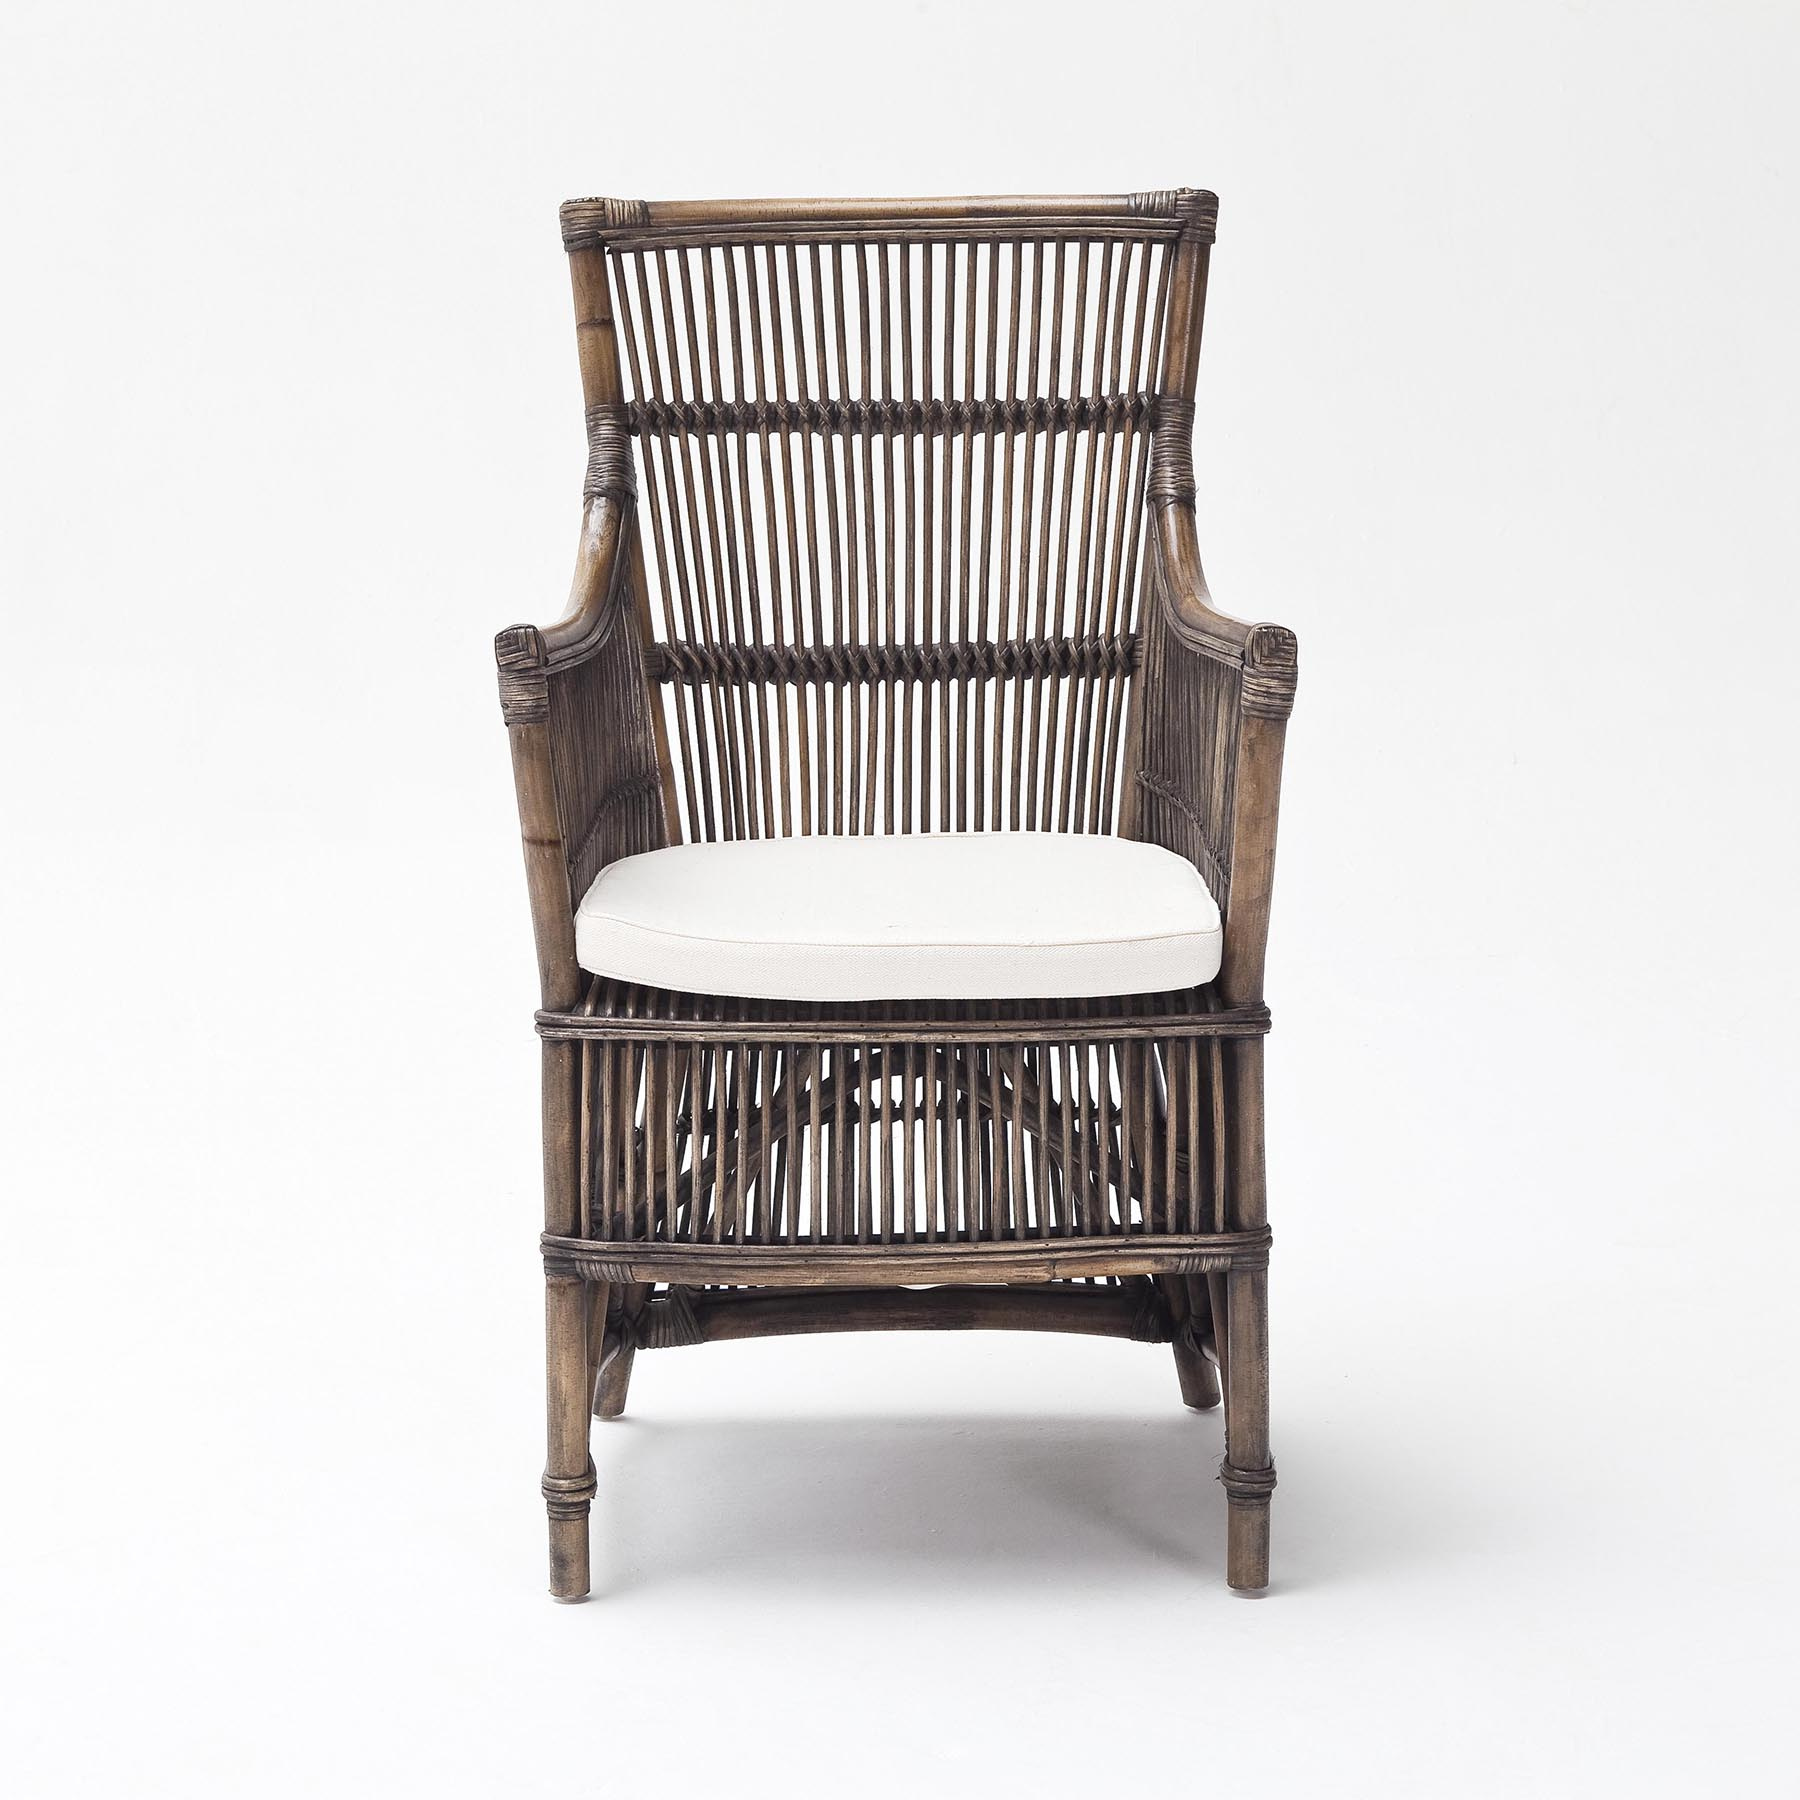 Duchess Rattan Wicker Chair Rattan Furniture Manufacturer